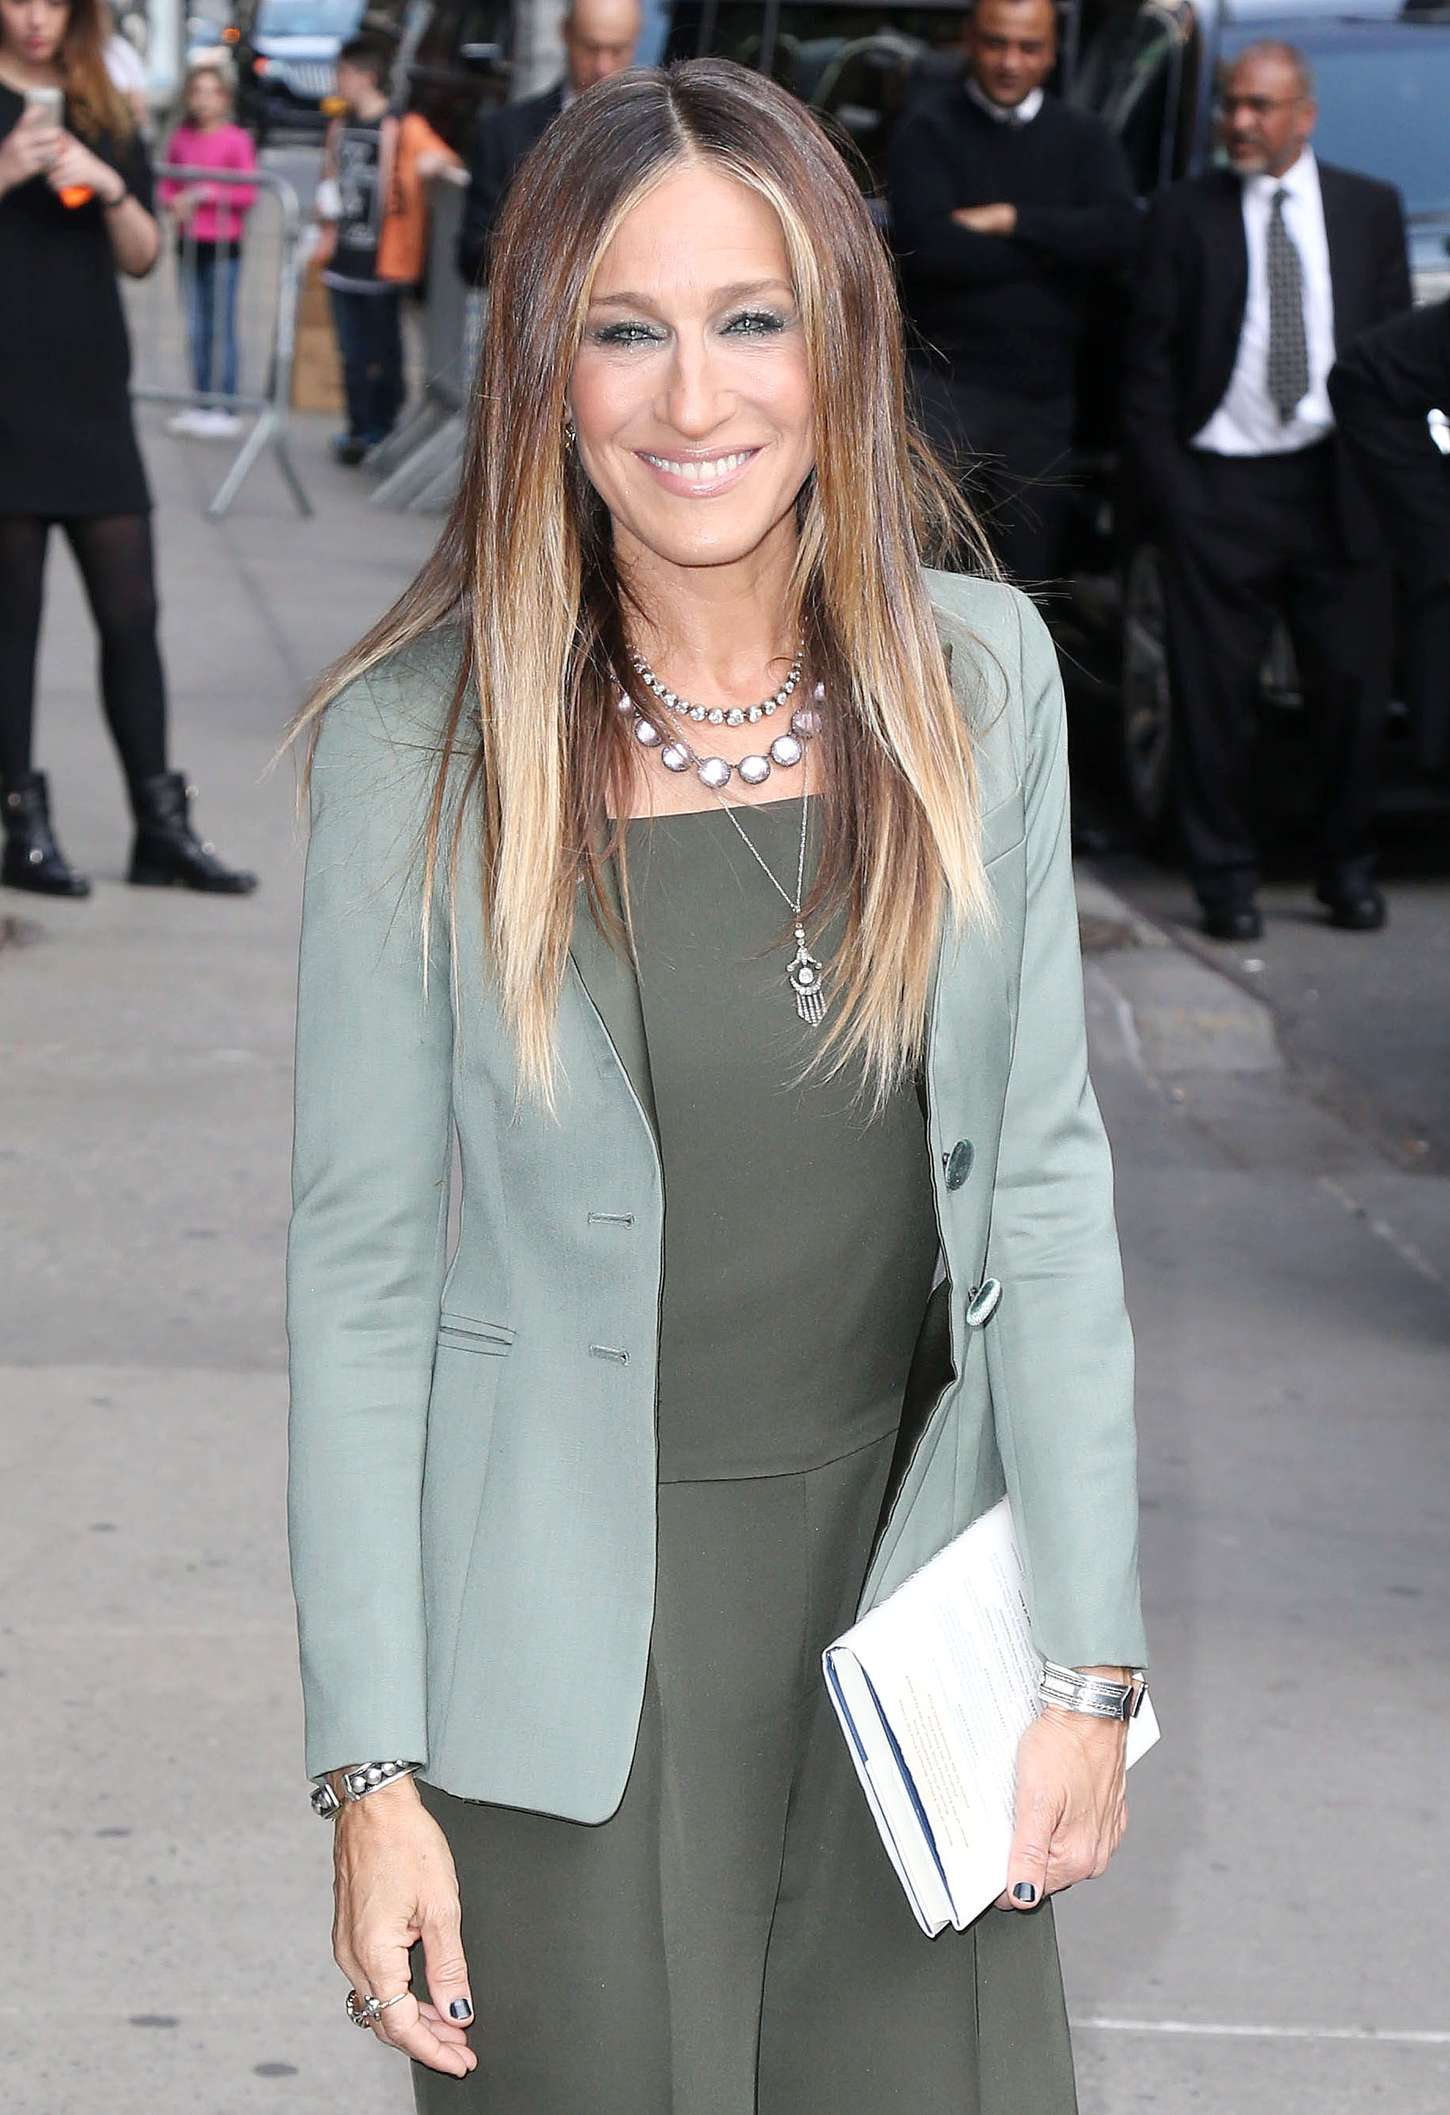 Sarah Jessica Parker Arriving at The Late Show with David Letterman in New York